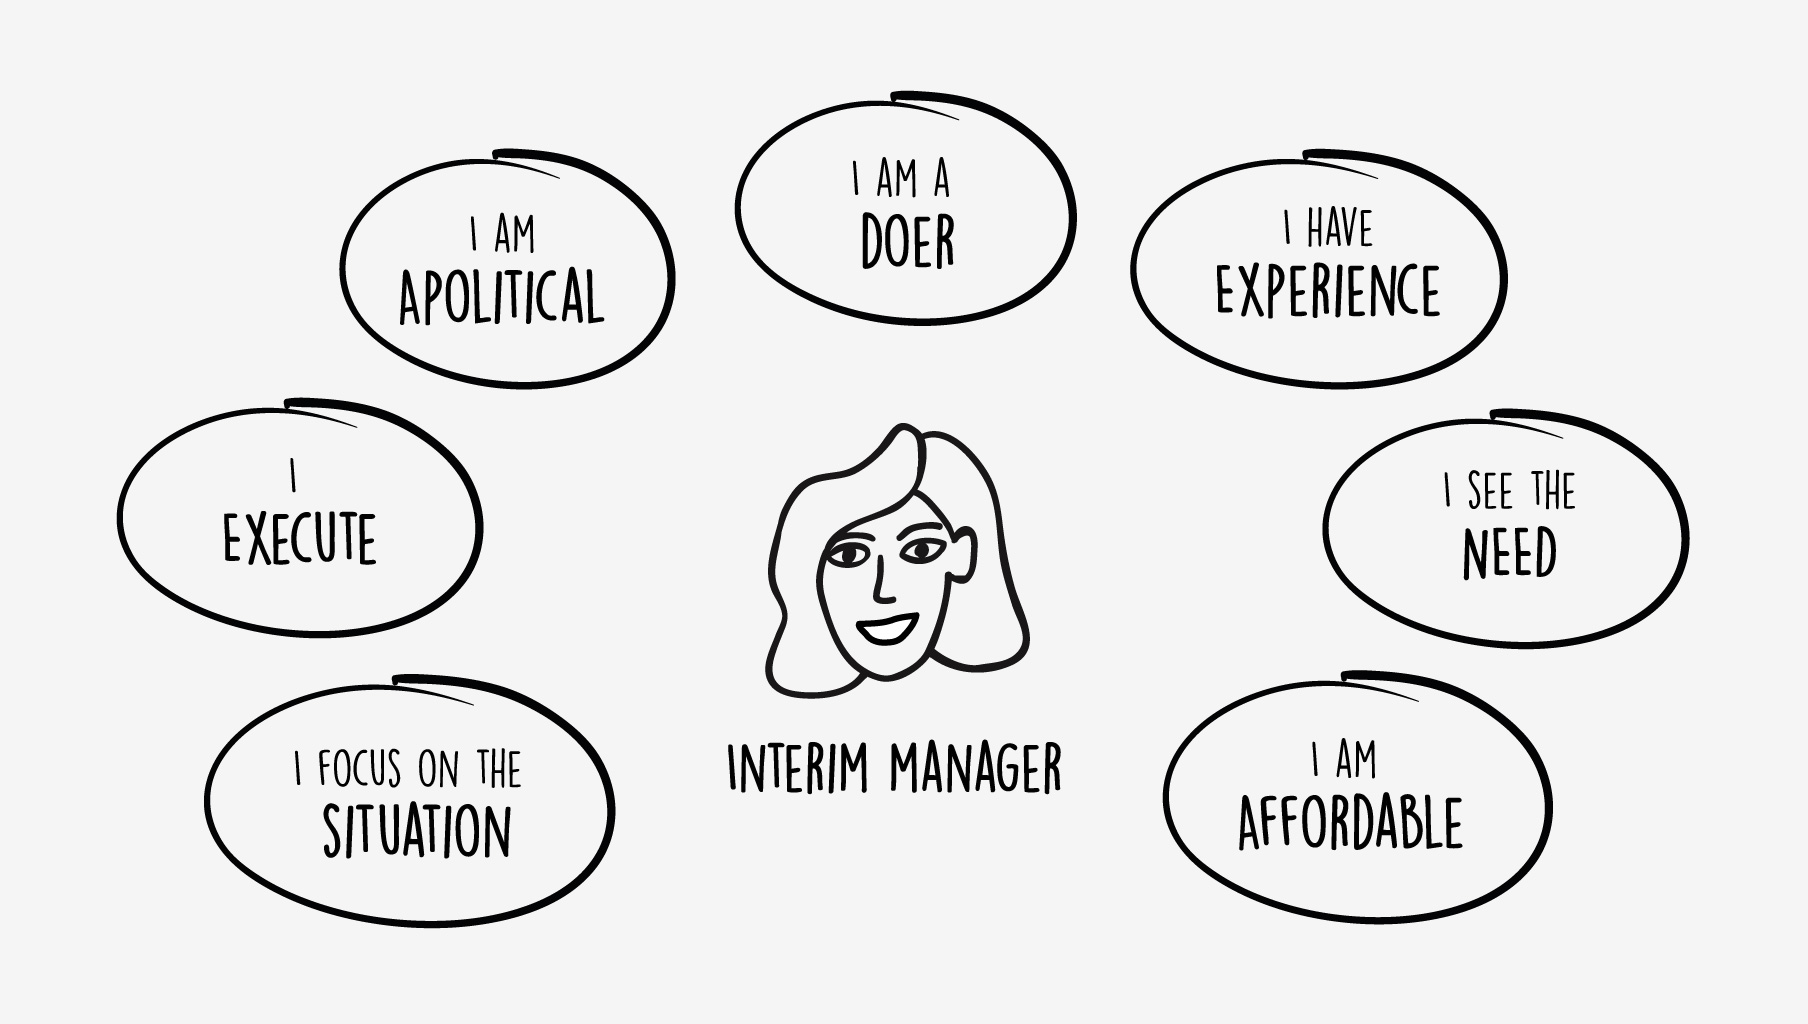 7 reasons for engaging an interim manager